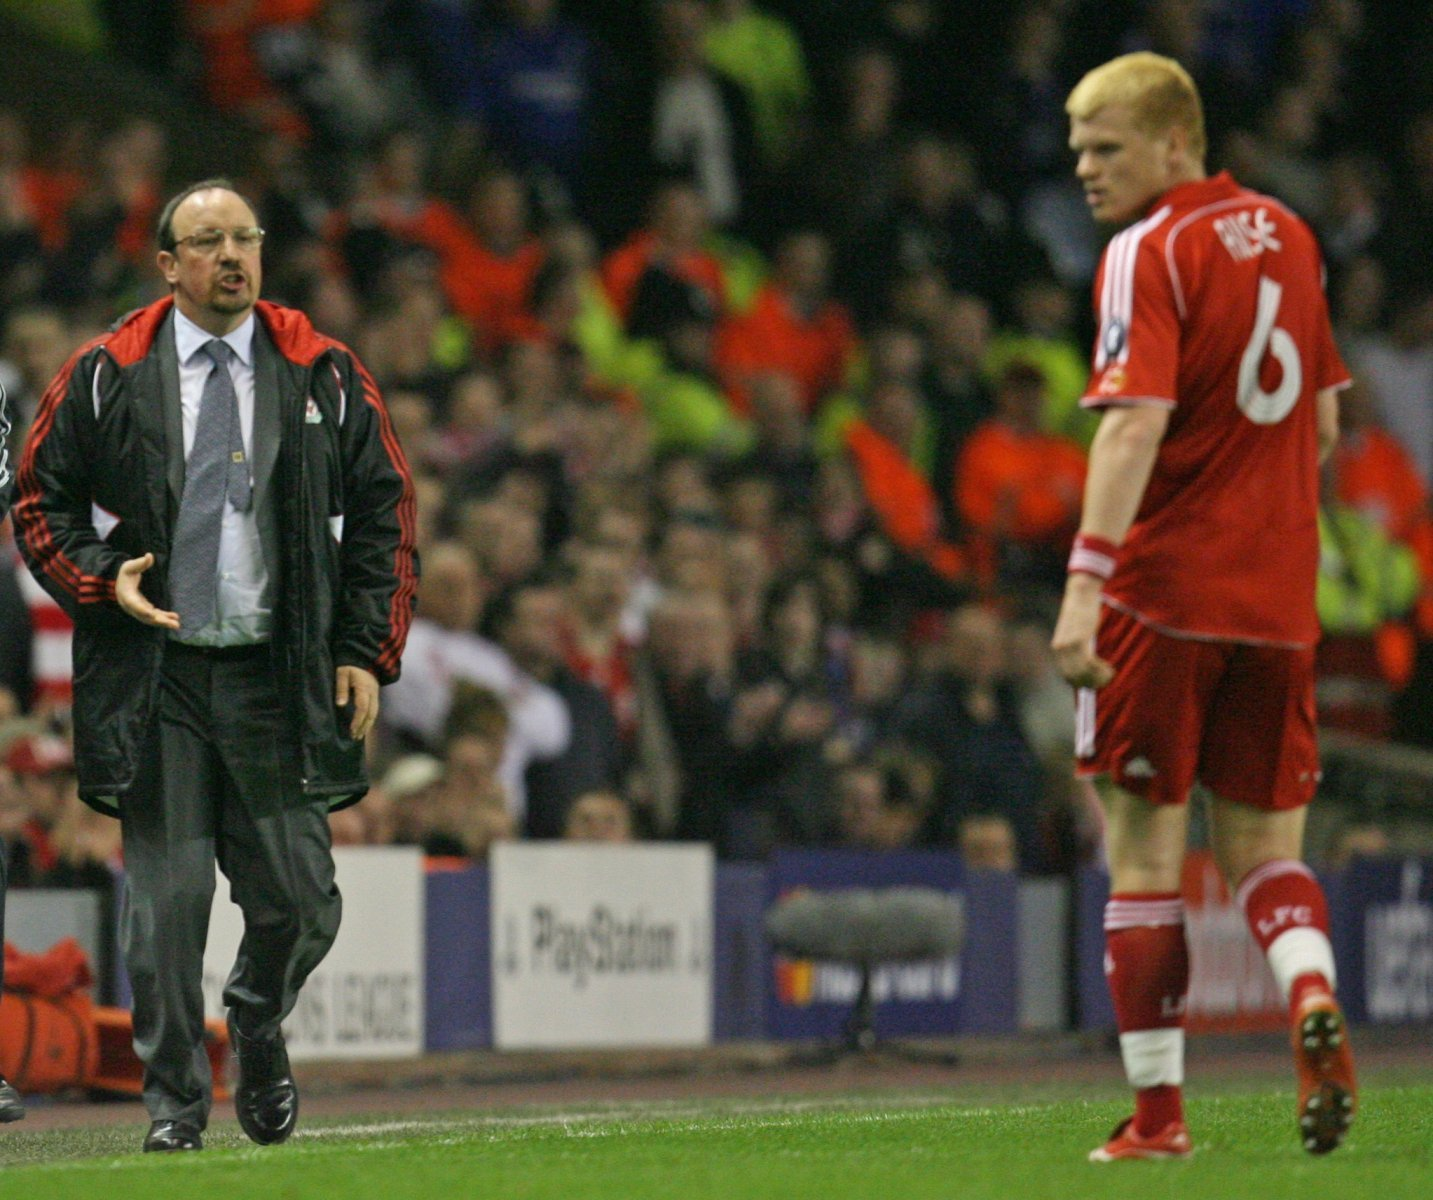 Liverpool: Fans applauded John Arne Riise's comments about Rafa Benitez